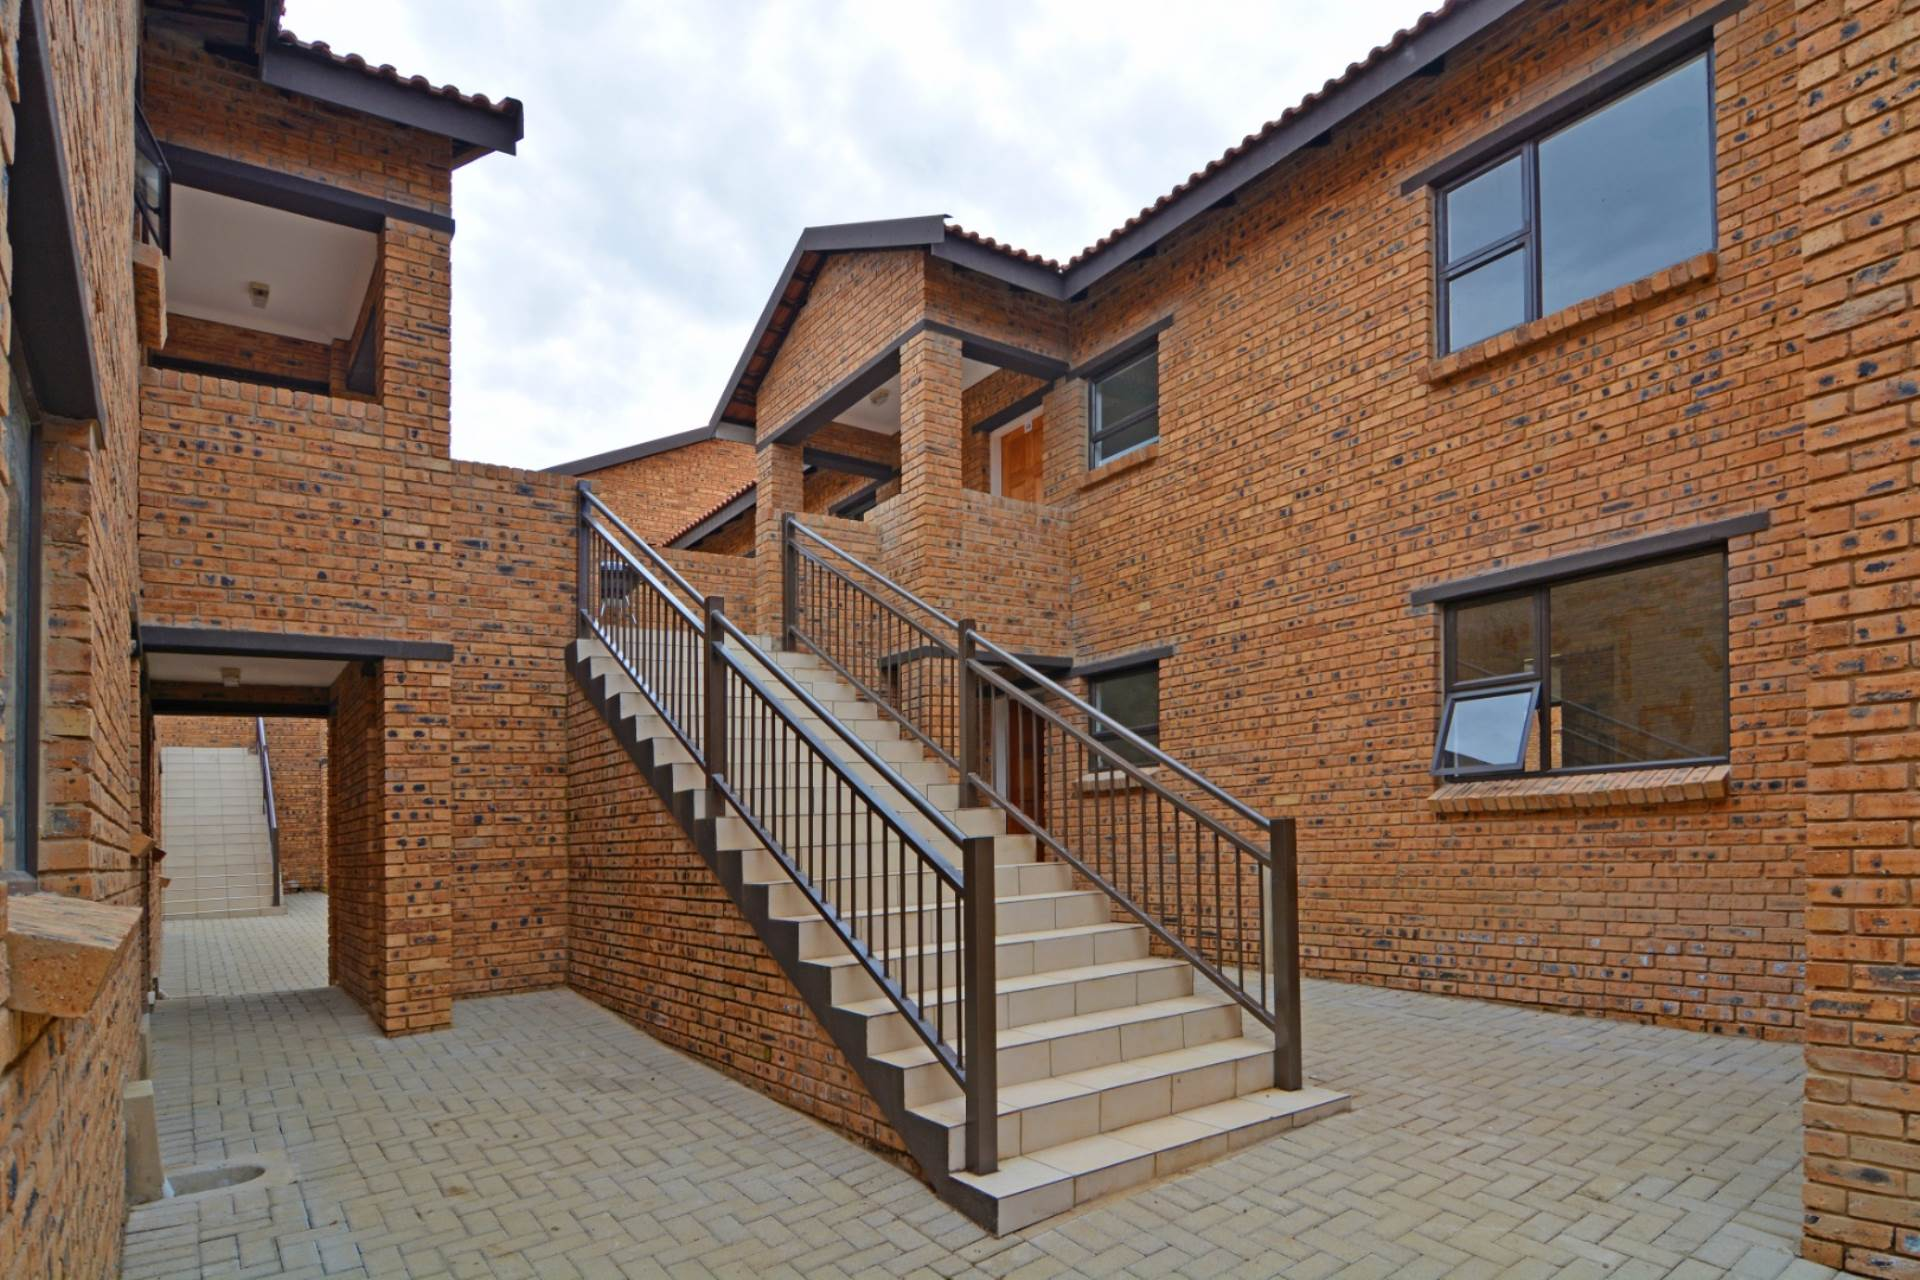 2 BedroomApartment For Sale In Witfield